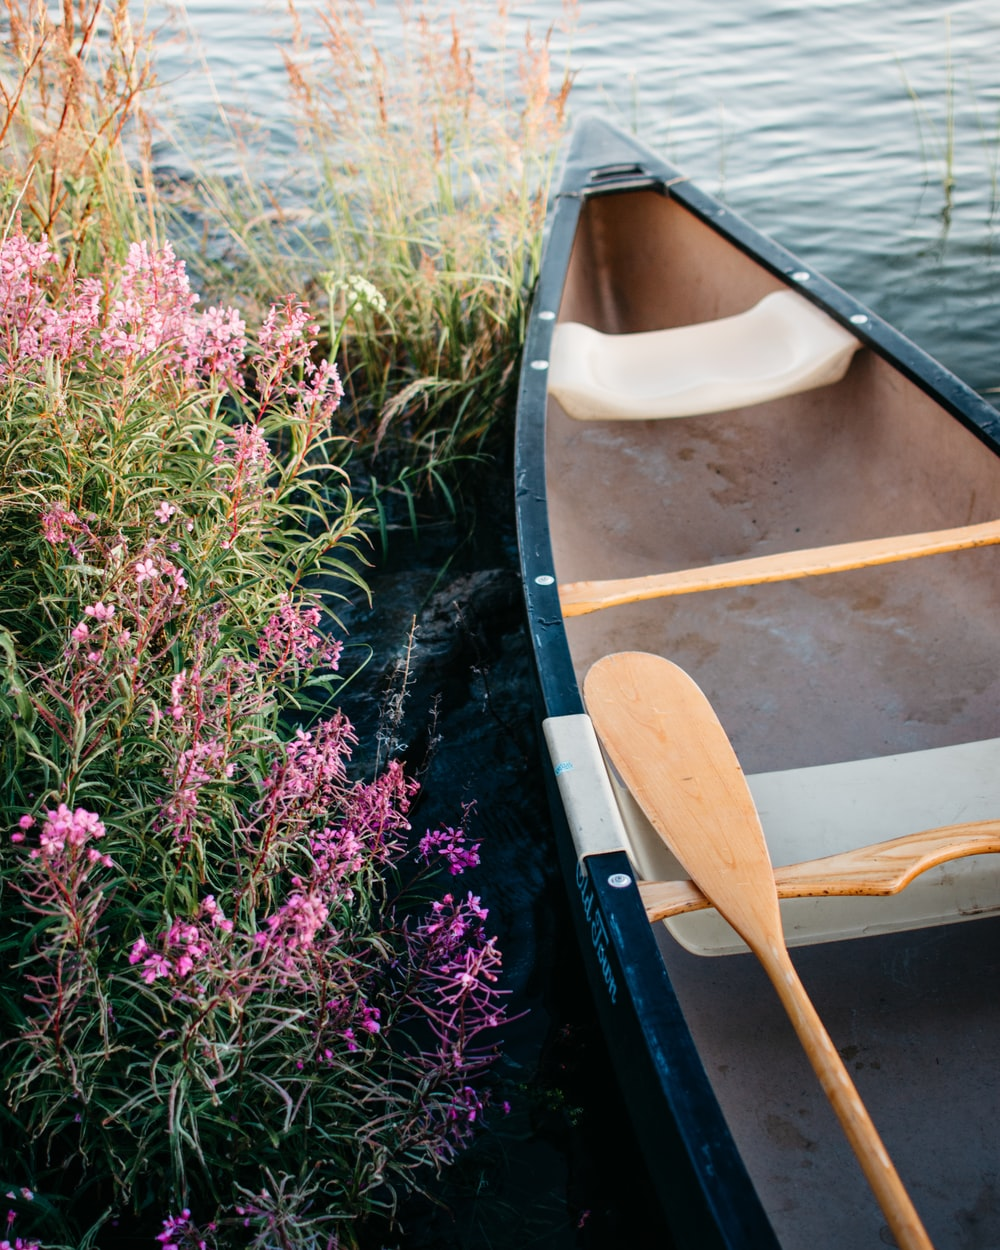 brown wooden boat on pink flower field during daytime